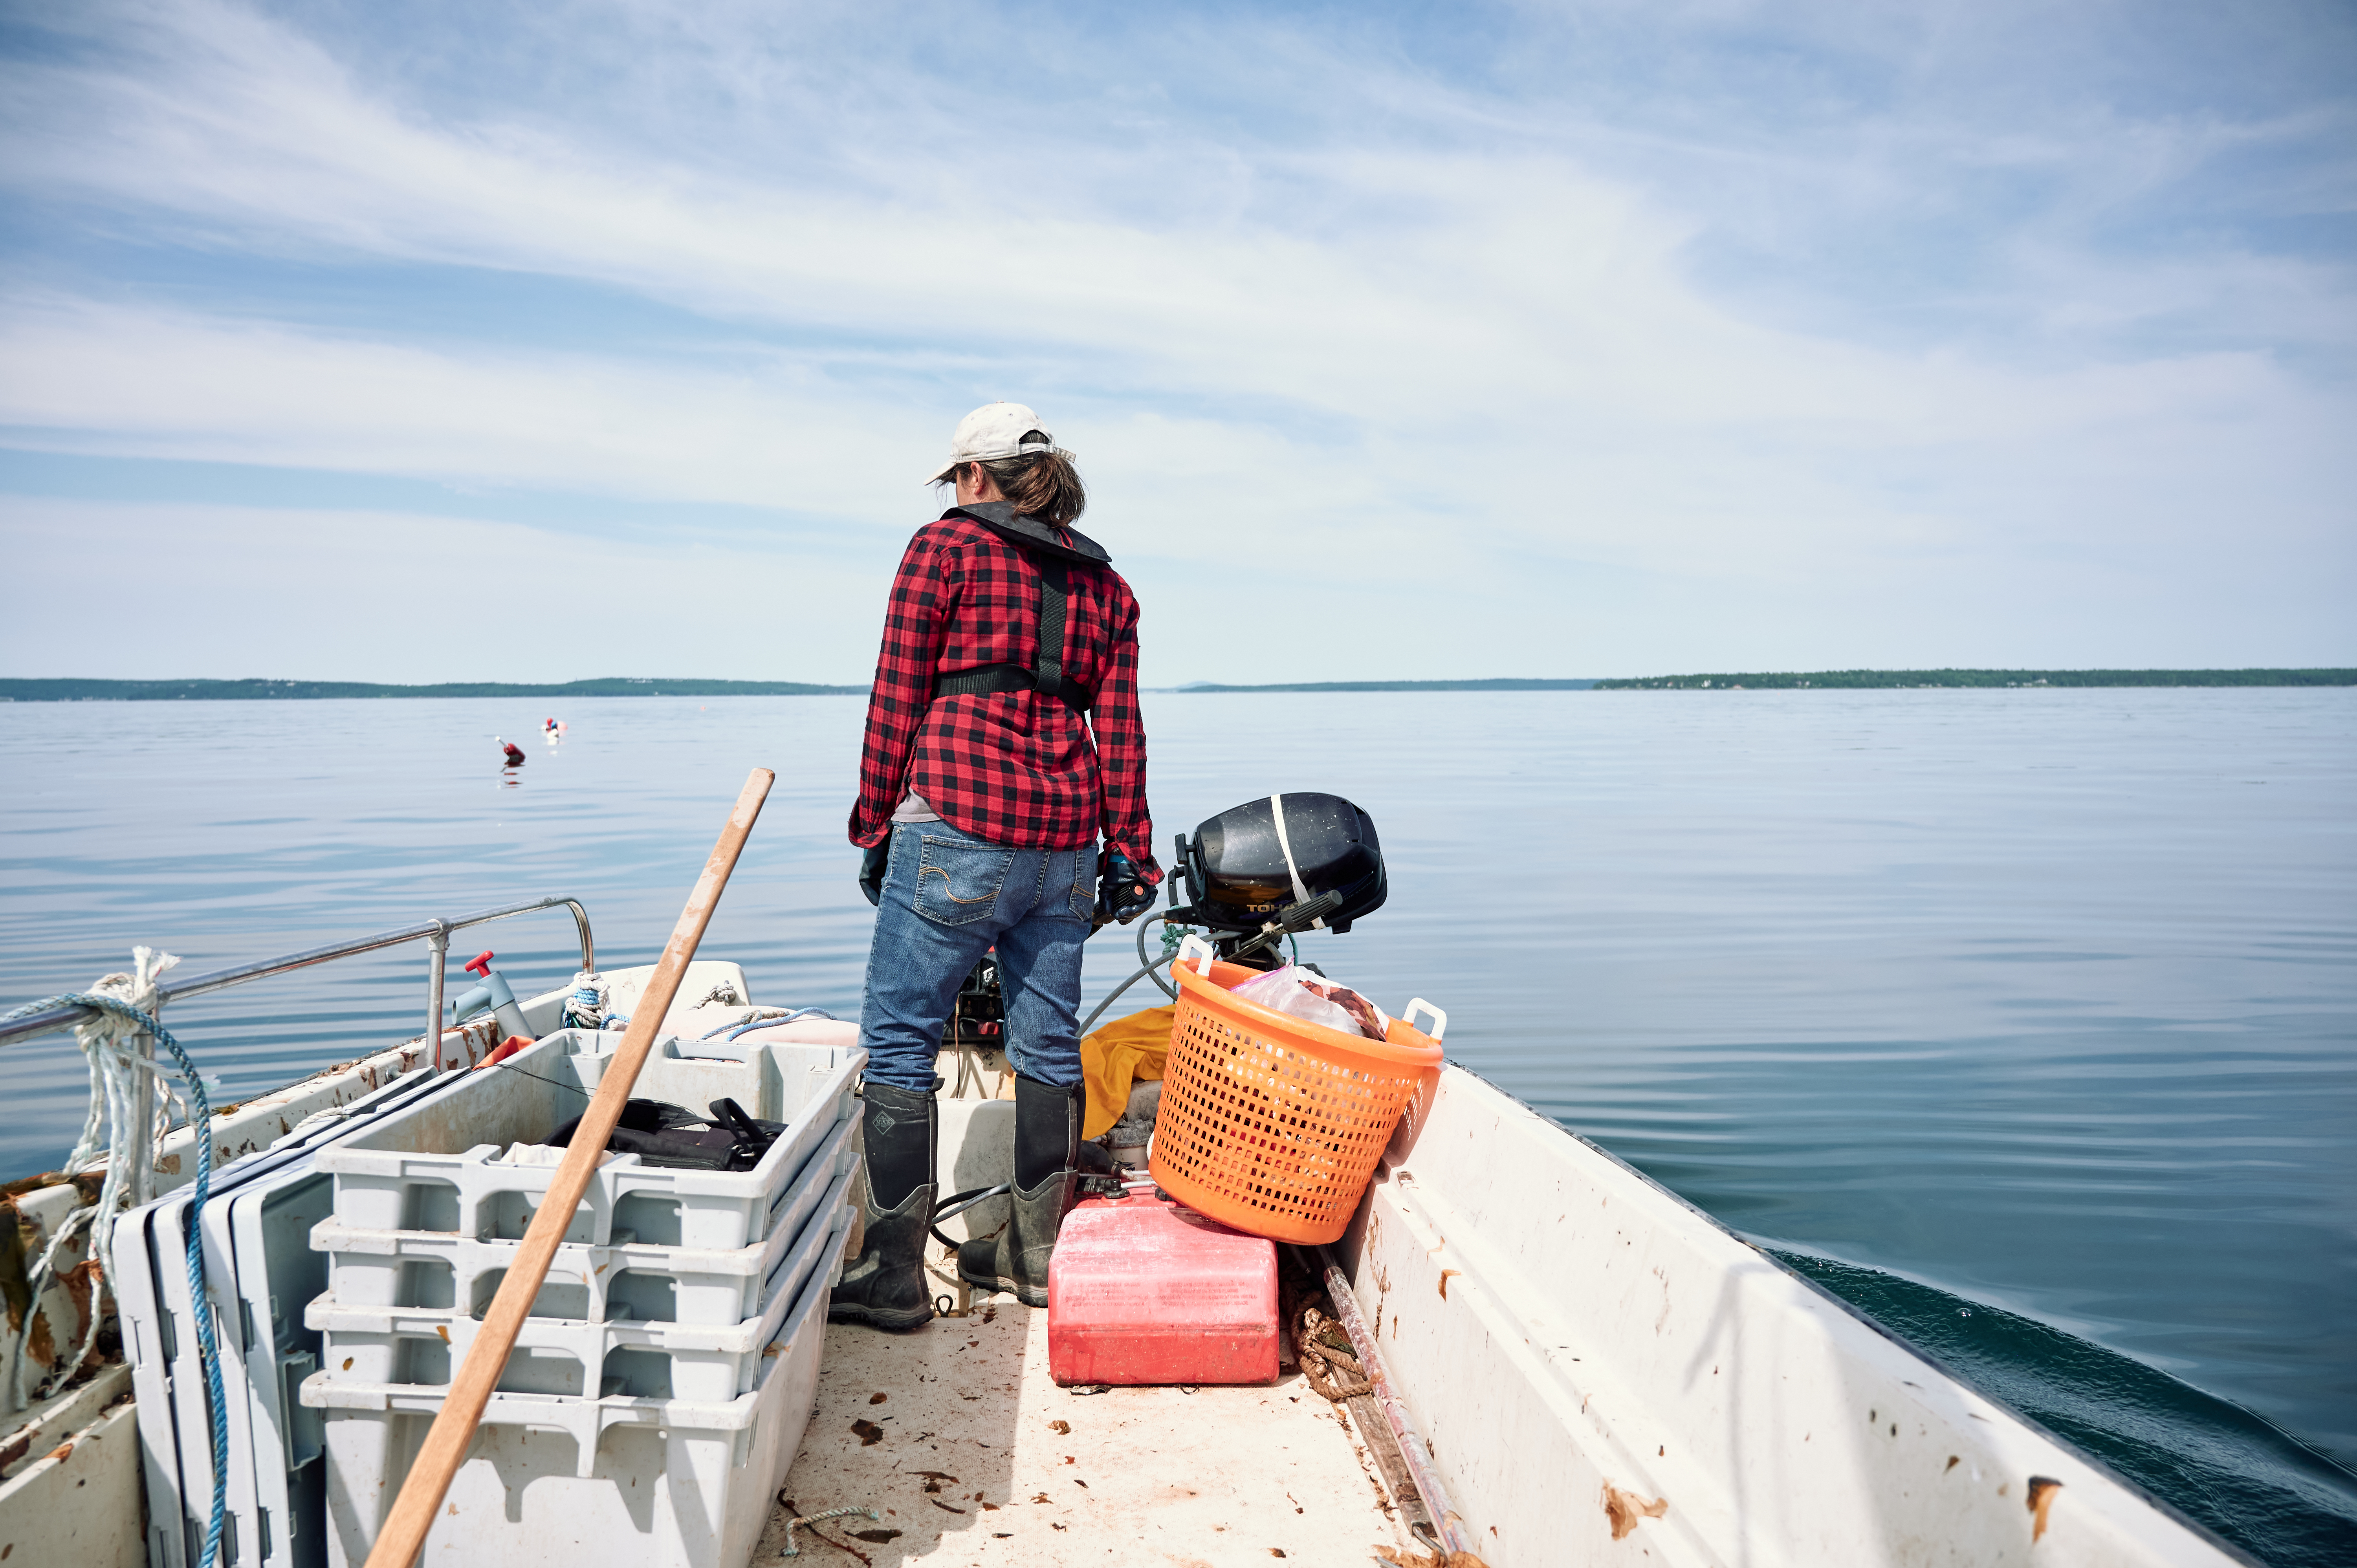 bostonglobe.com - Ellen Ruppel Shell - Are sprawling fish farms coming to swallow Maine?